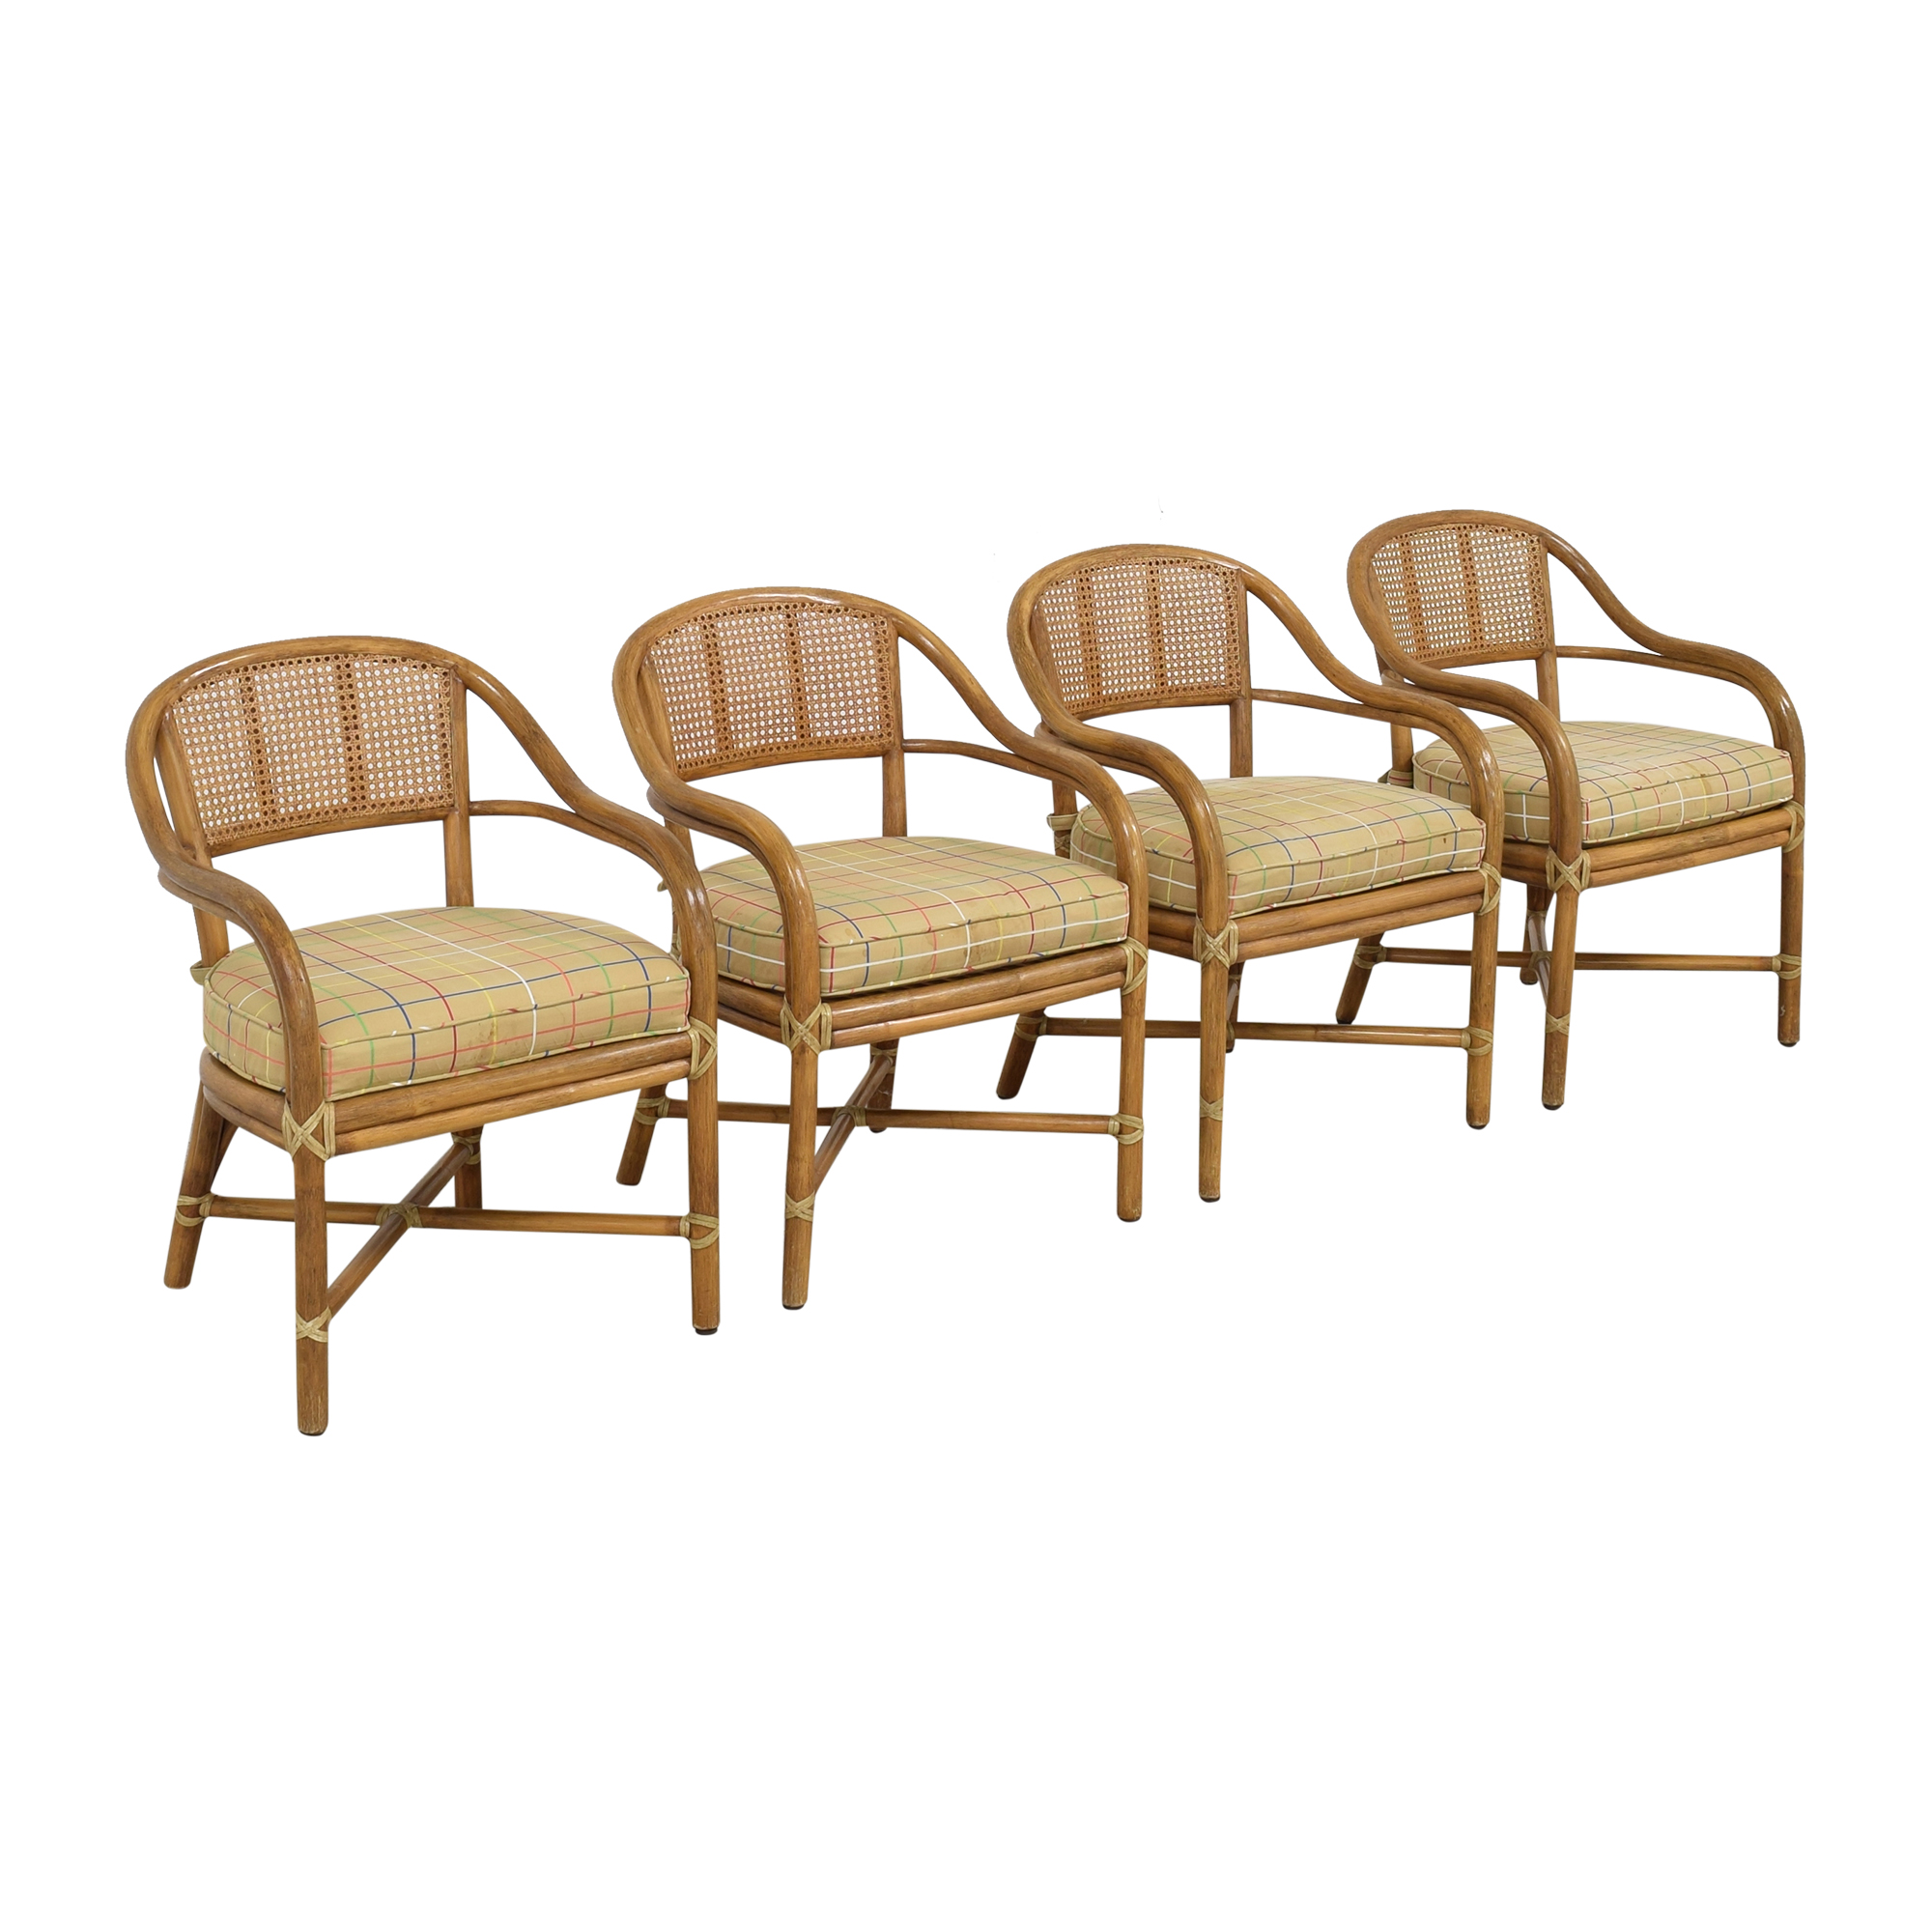 McGuire McGuire Wicker Dining Chairs pa